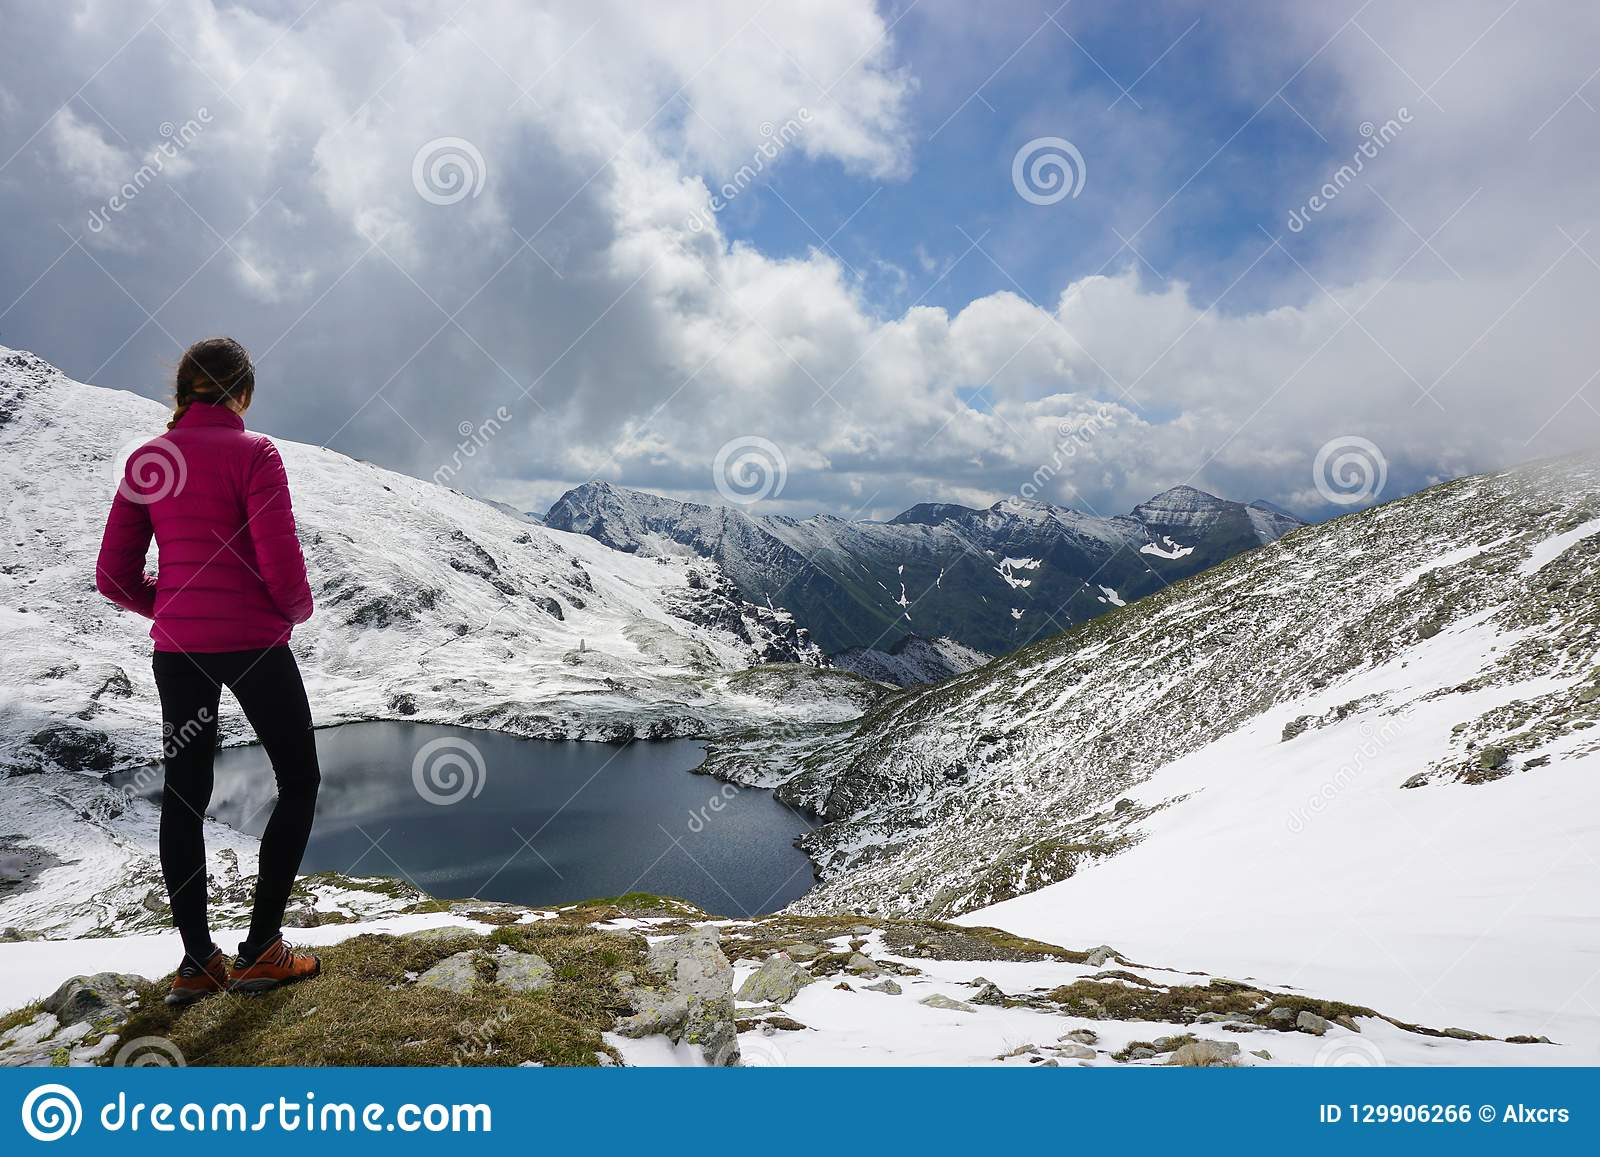 Young woman admiring the view in the mountains